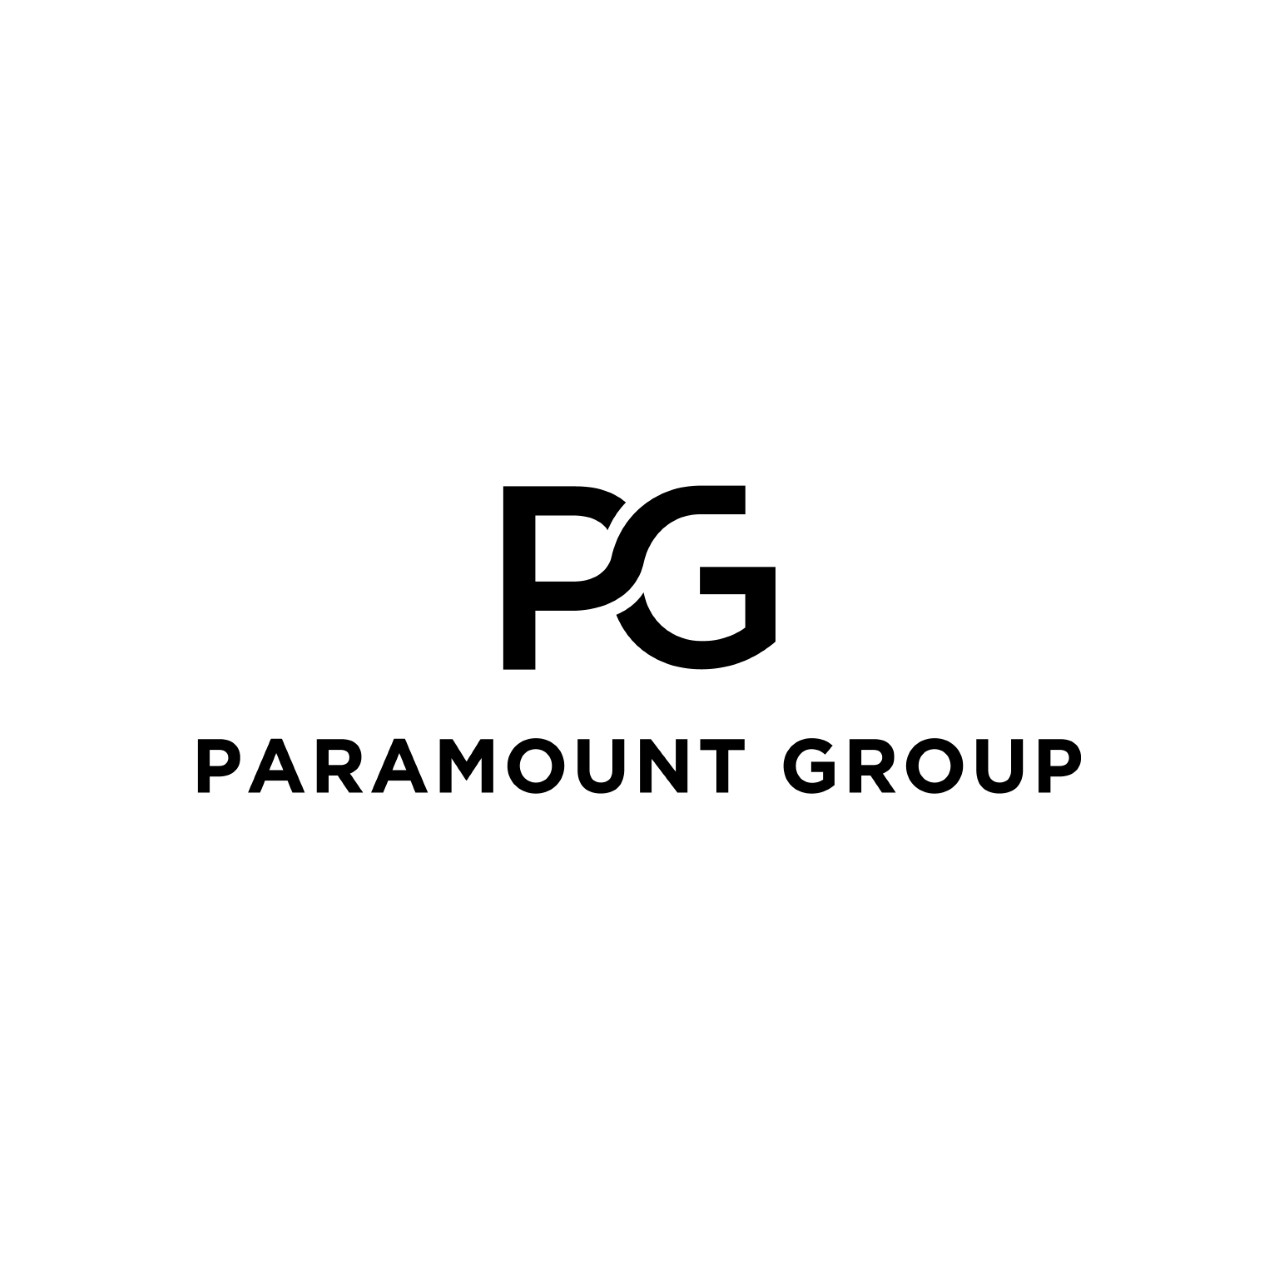 paramount group compass logo.png